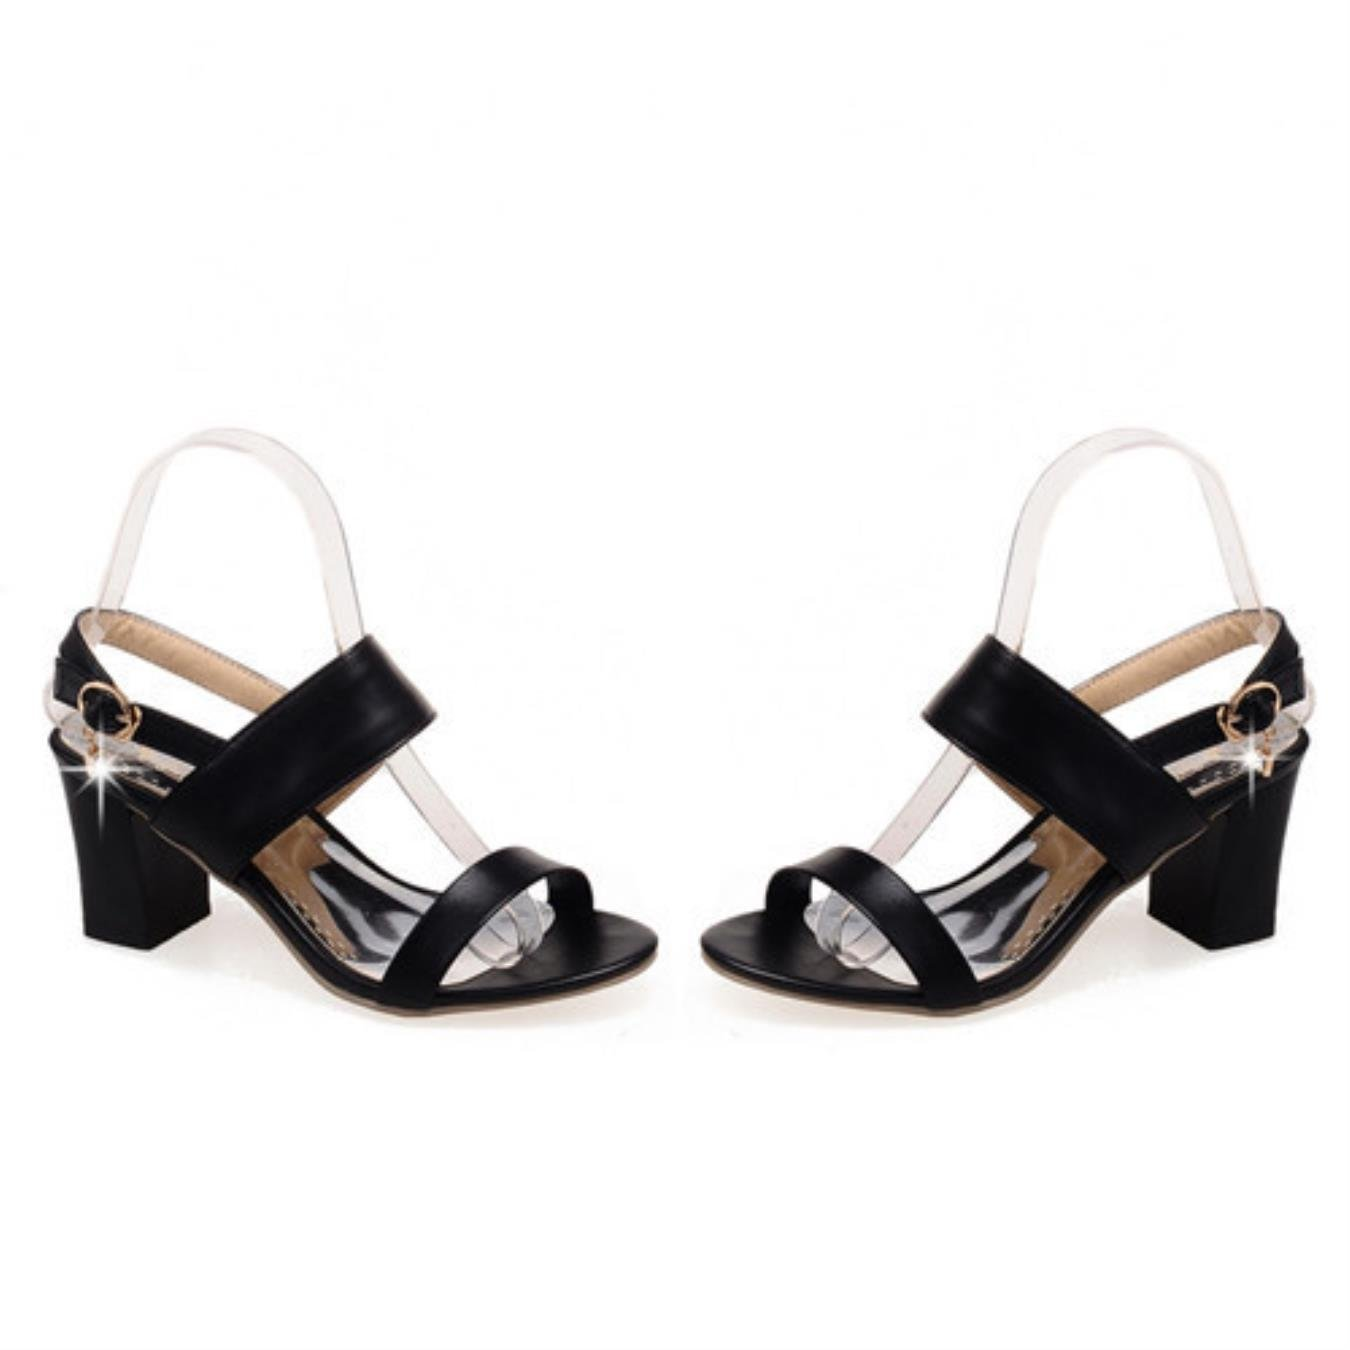 Amazon.com  Meotina Shoes Women Sandals Summer Open Toe Ankle Strap Party  Thick High Heels Sequined Black White Ladies Blue Shoes Size 43  Clothing 5231b7c81982